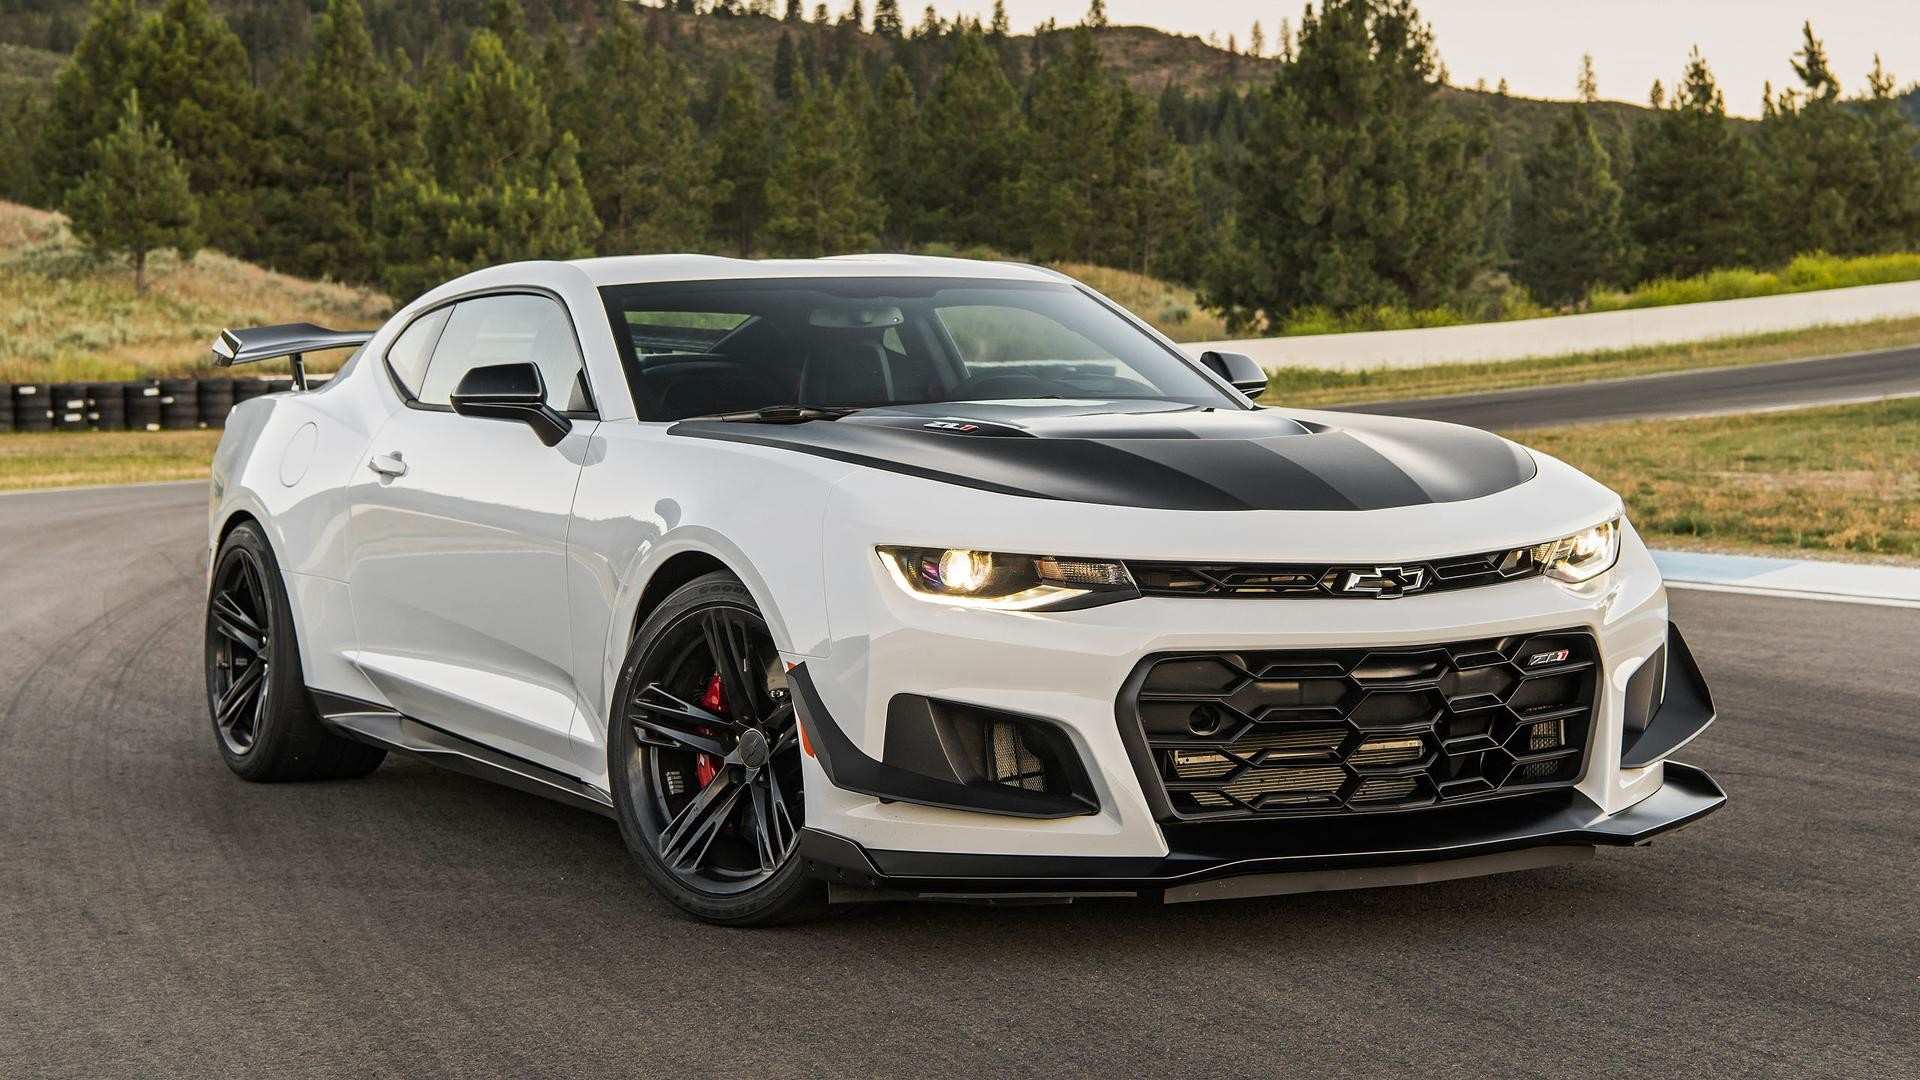 1920x1080 2018 Chevrolet Camaro ZL1 1LE Security - teamkgsr.com